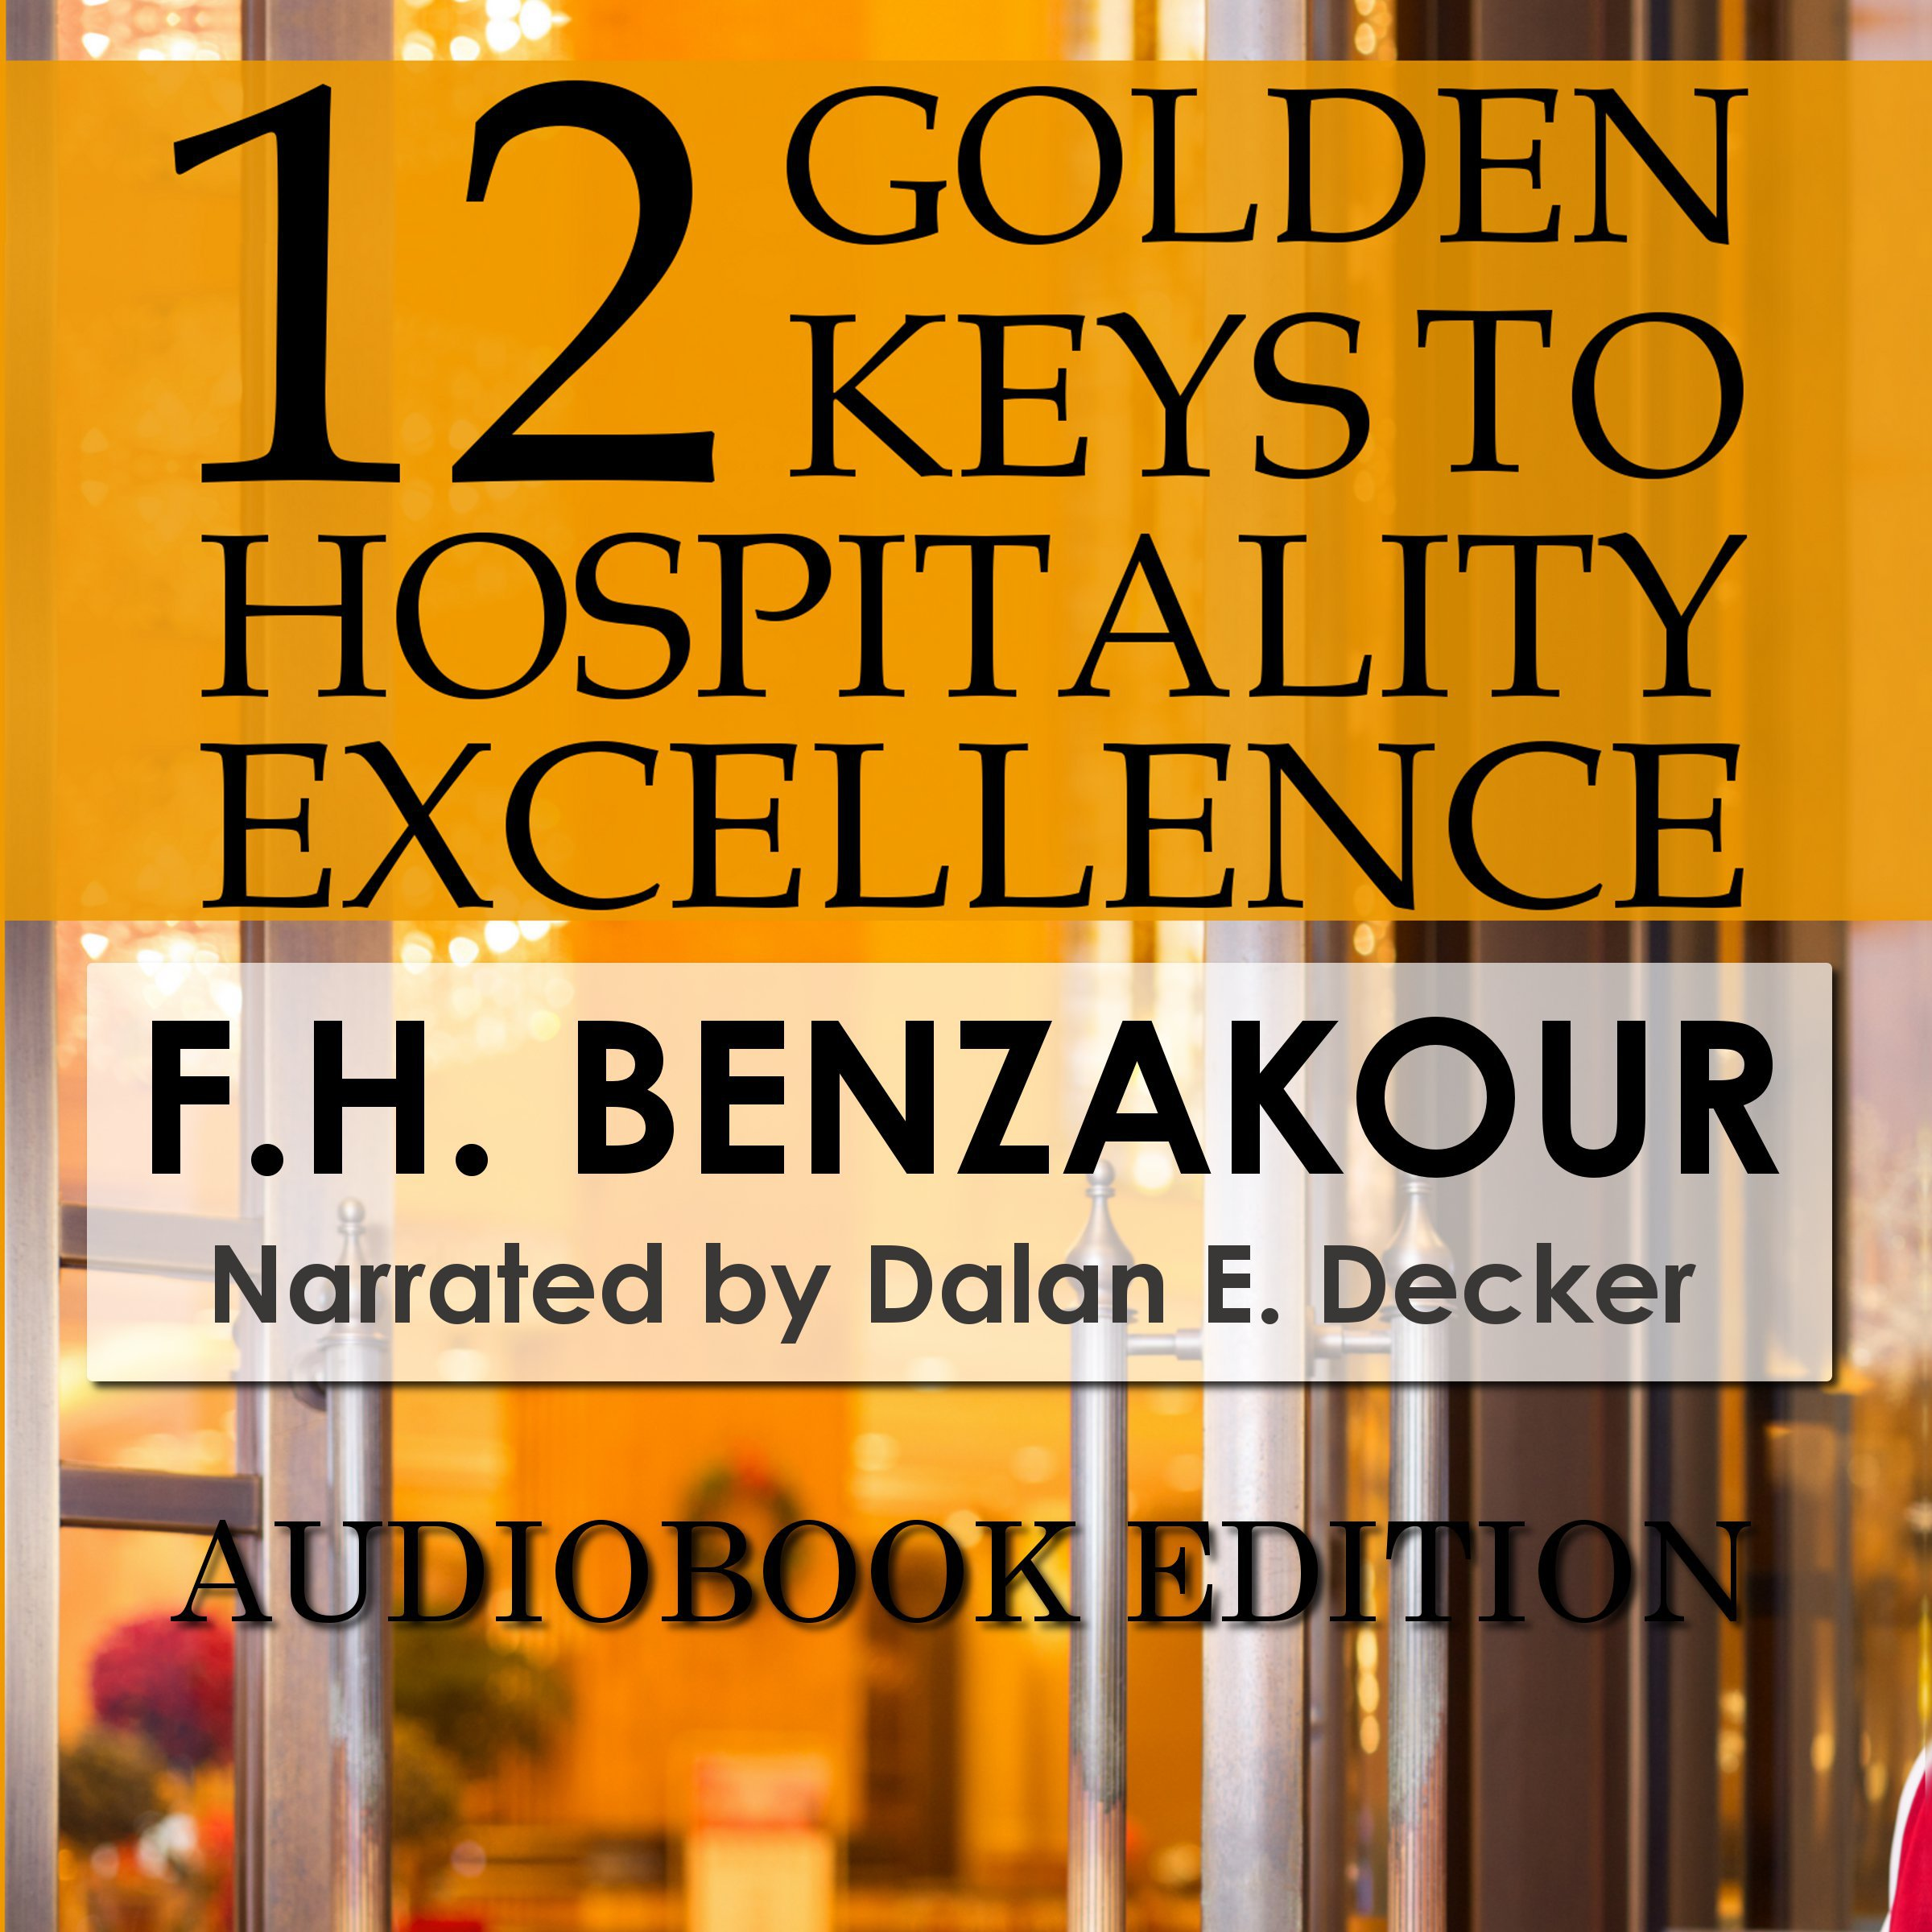 "SoundFridge produces audiobook of ""12 Golden Keys to Hospitality Success"" by F.H. Benzakour"